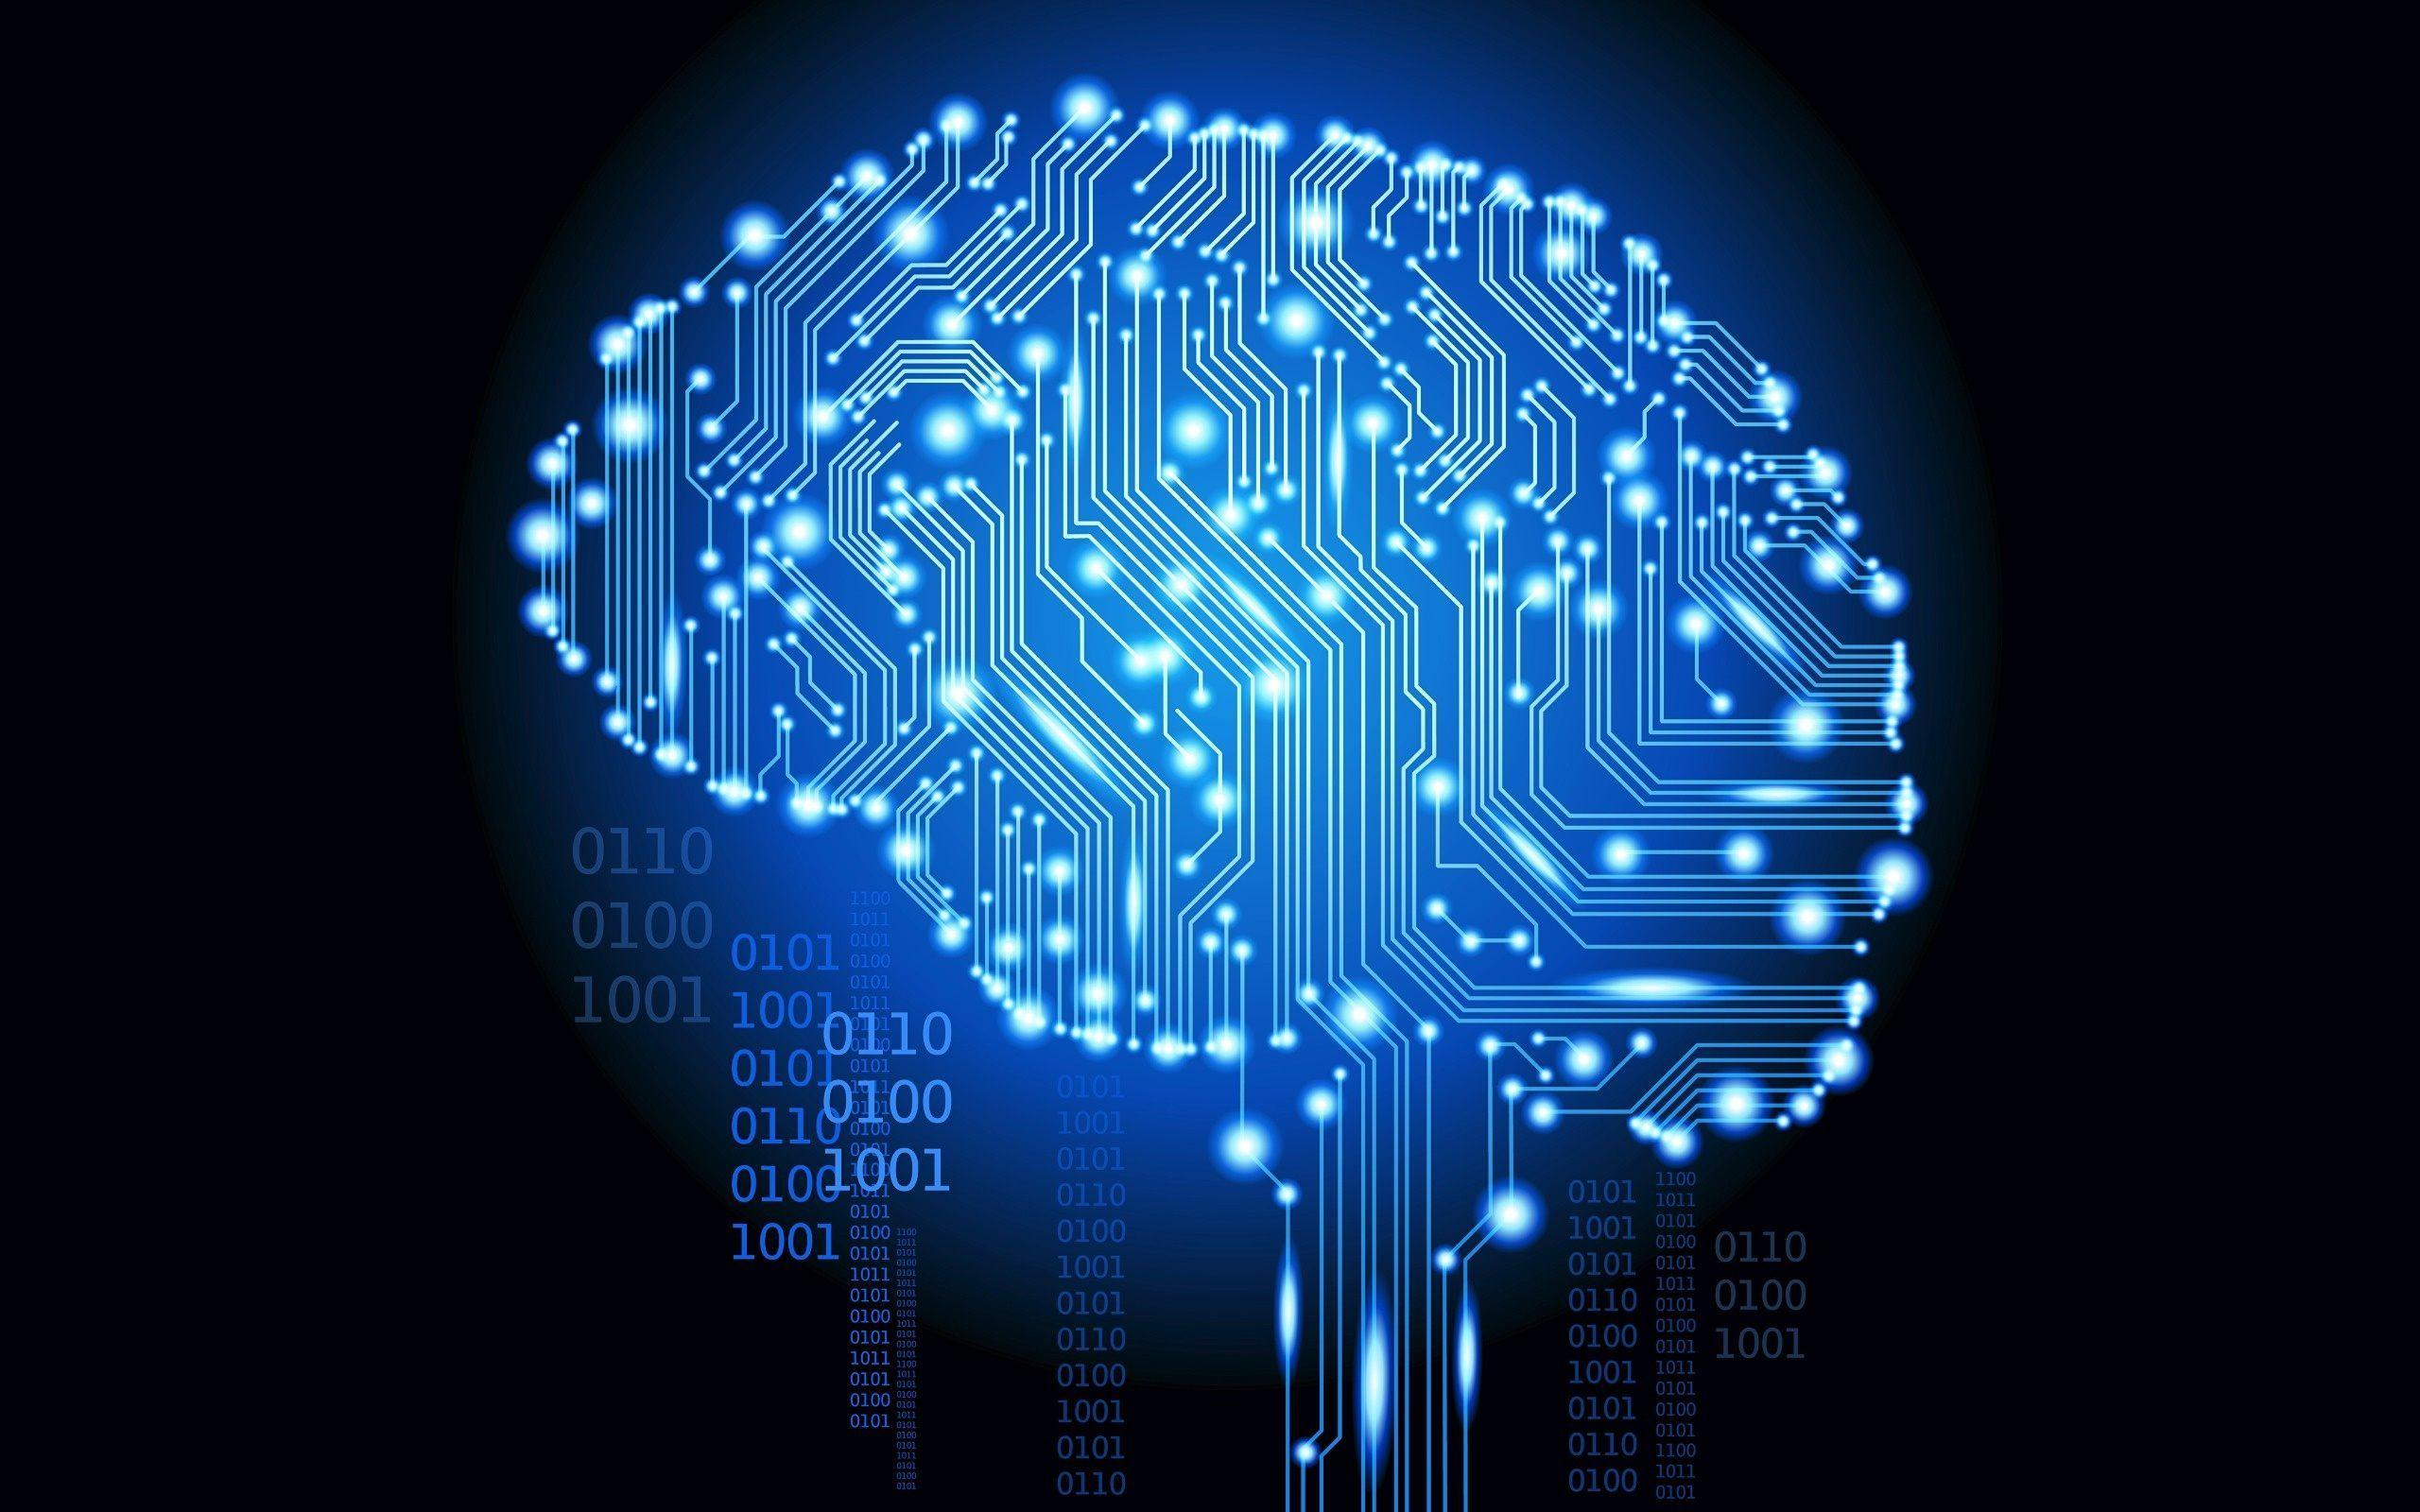 machine learning smart brain wallpaper - Download Hd machine .